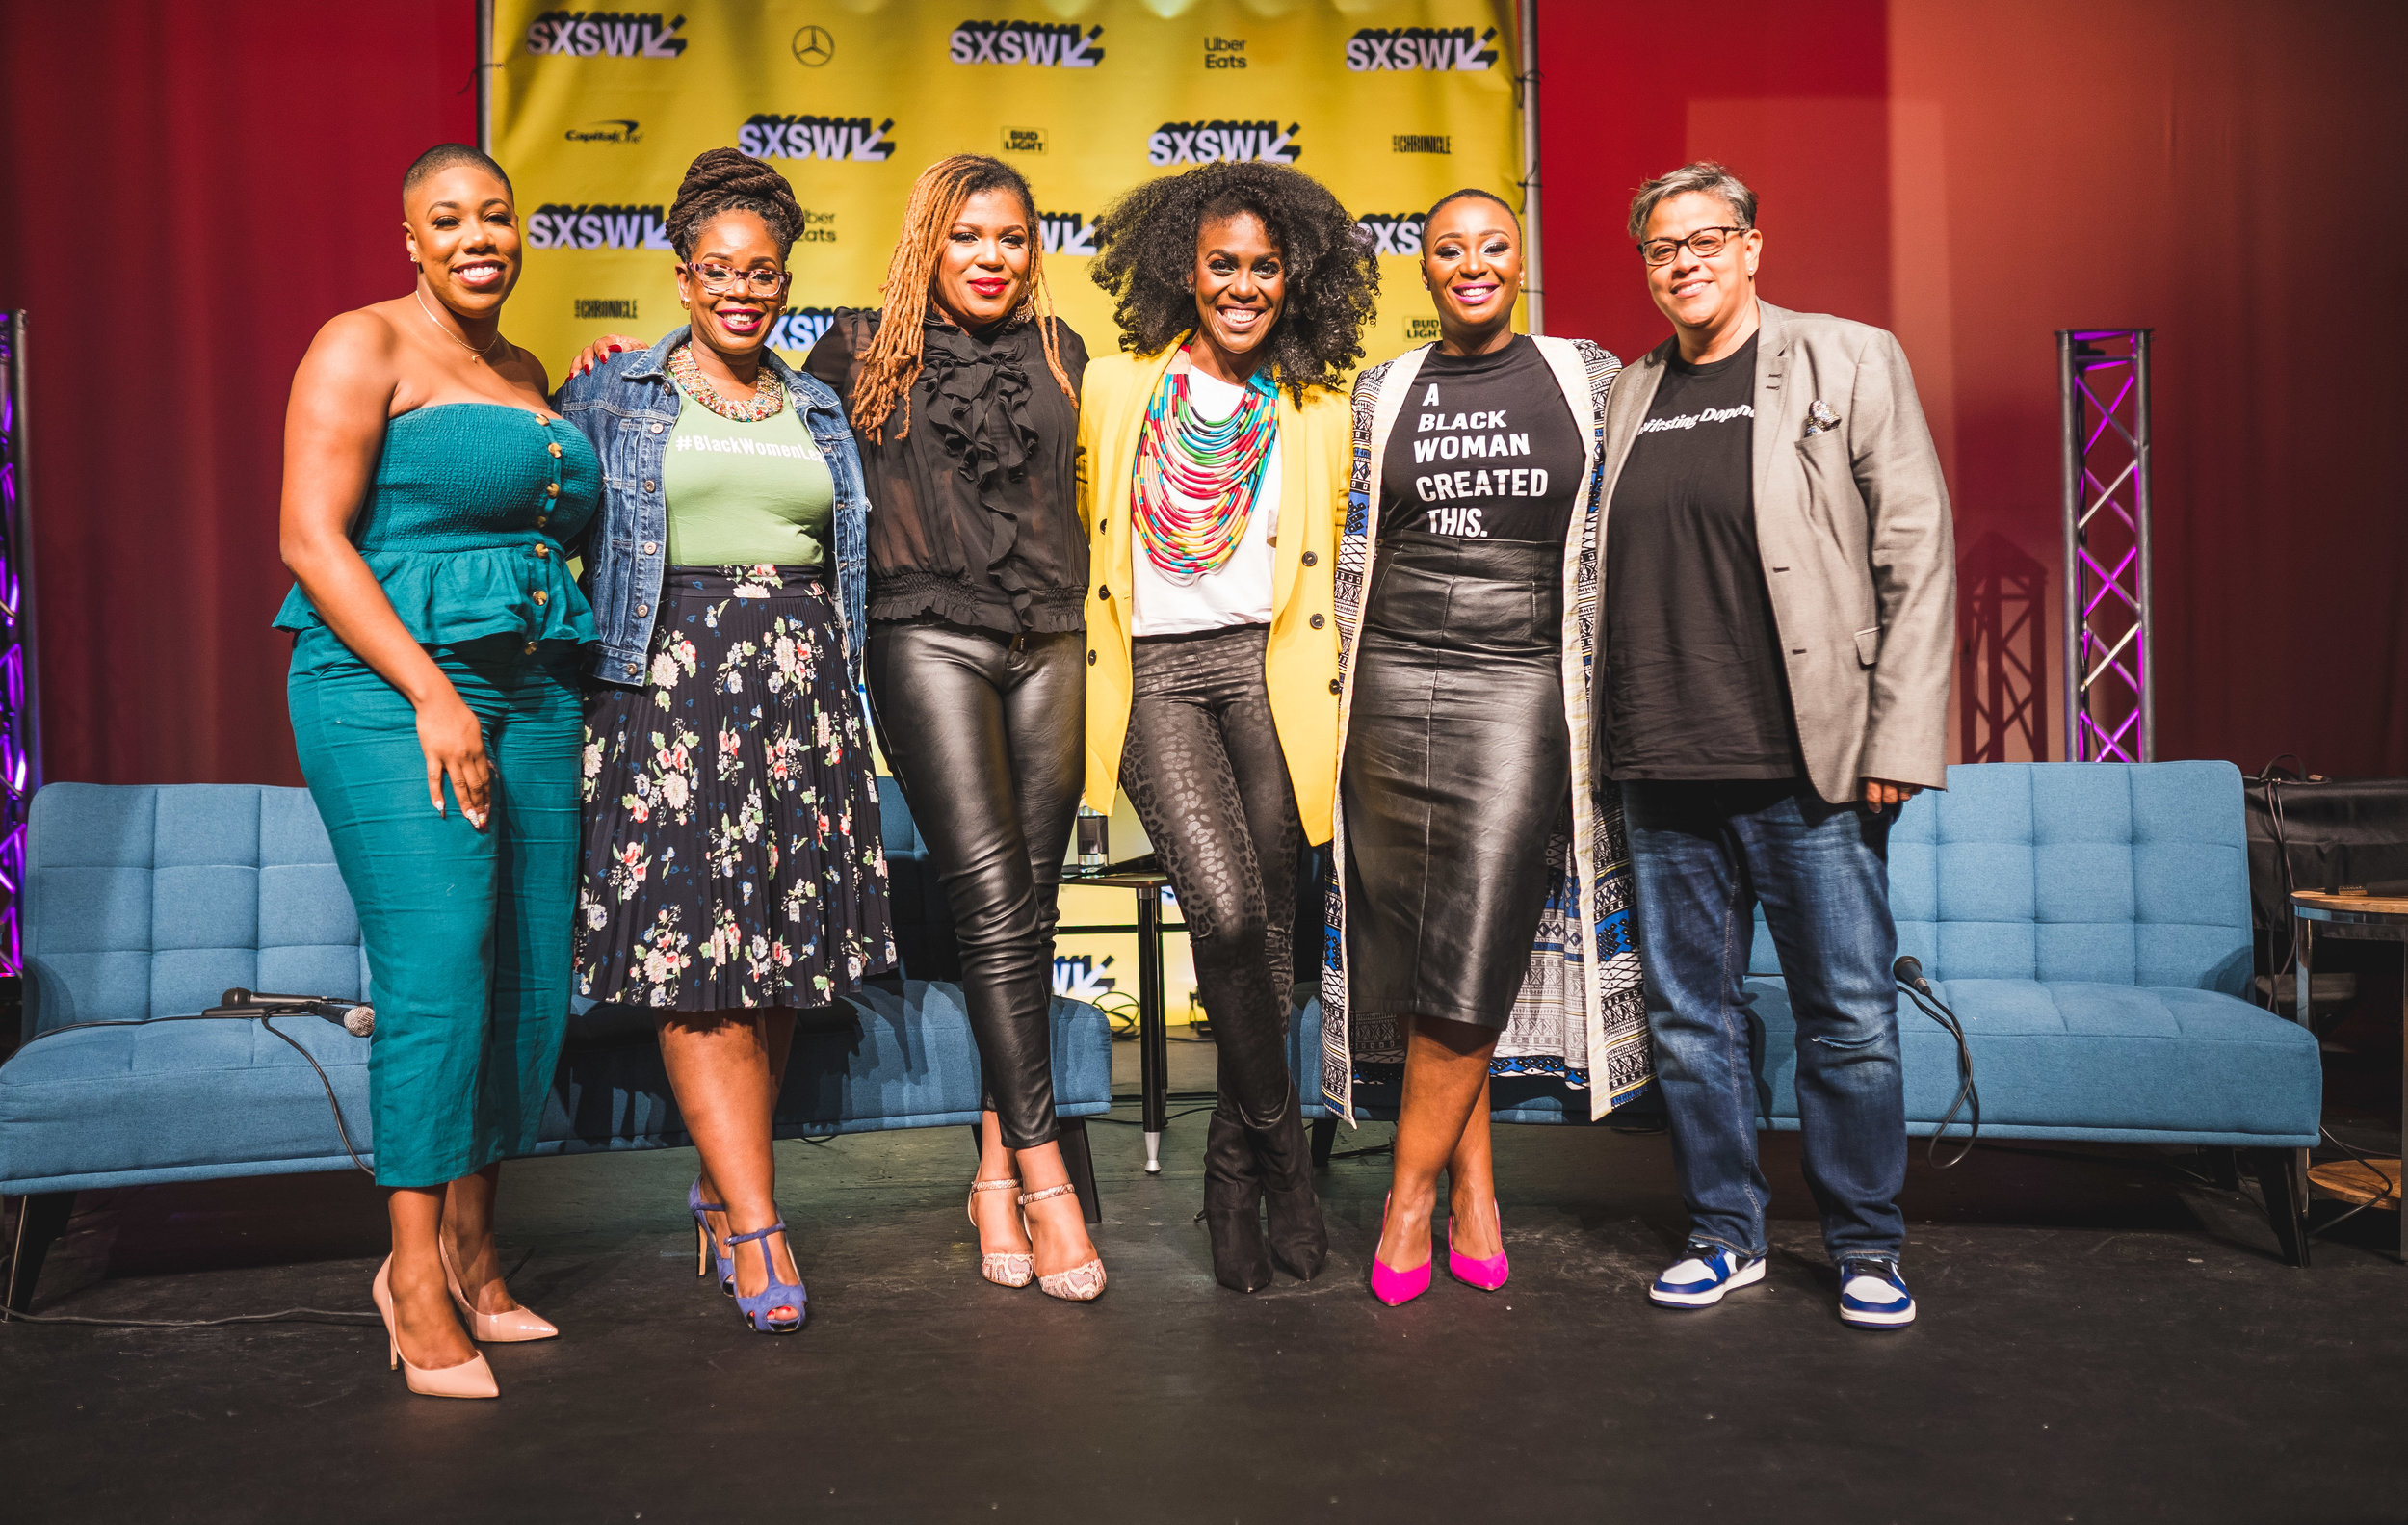 Pictured from L to R: Symone Sanders (CNN); Glynda Carr (Higher Heights); Yesha Callahan (ESSENCE); Fri Forjindam (Mycotoo); Kalilah Wright (Mess In A Bottle); and Melissa Bradley (1863 Ventures). SxSW. 2019. Austin, TX.